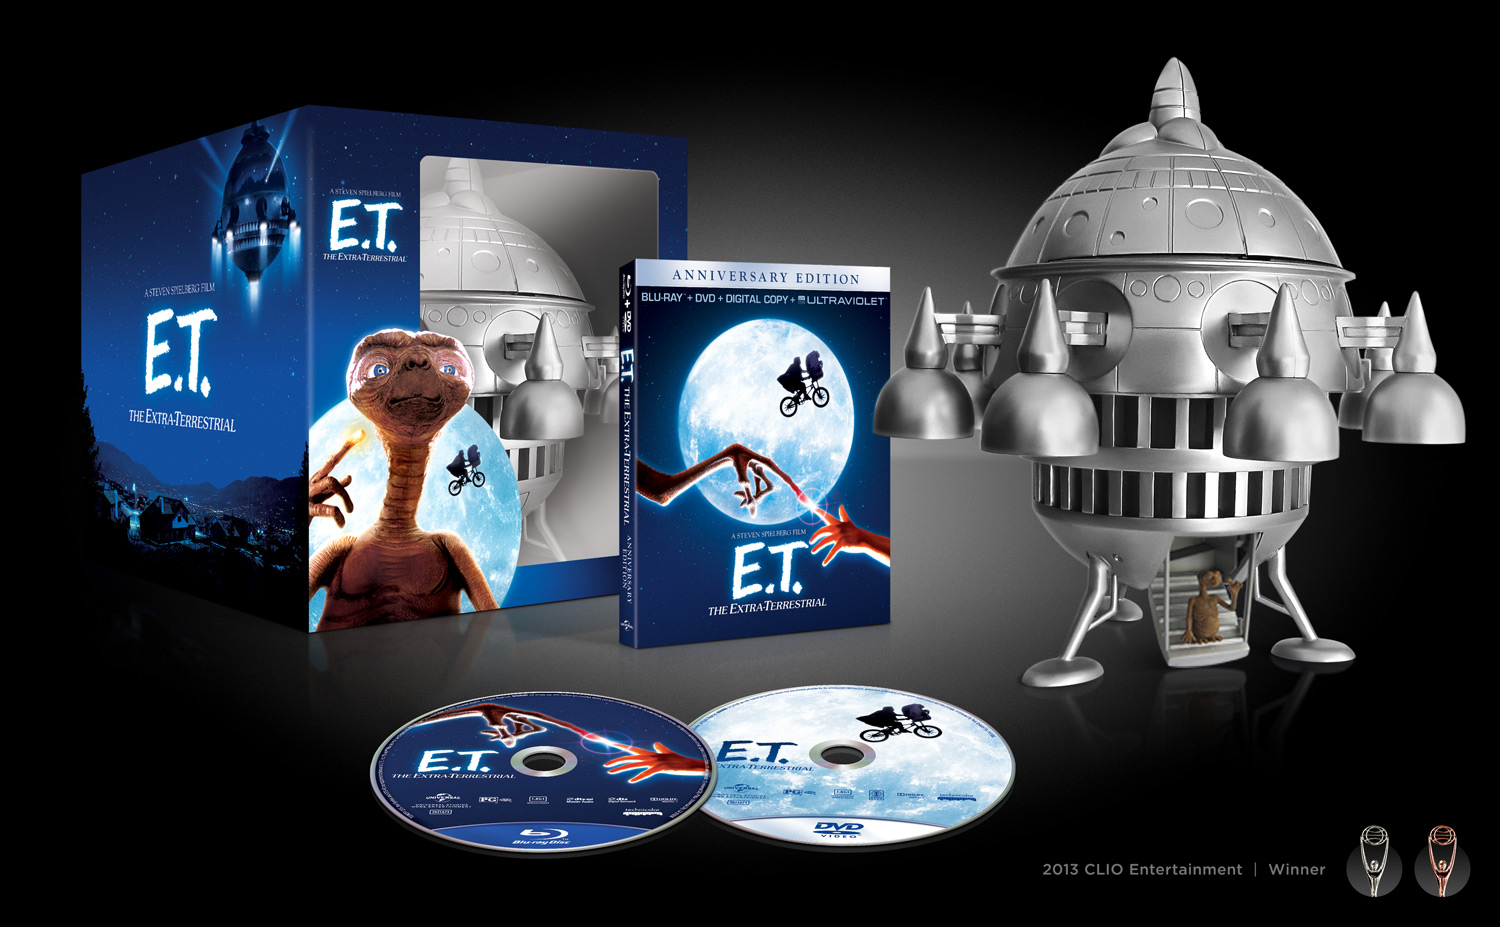 ET_30thAnniversary_Collection_01.jpg